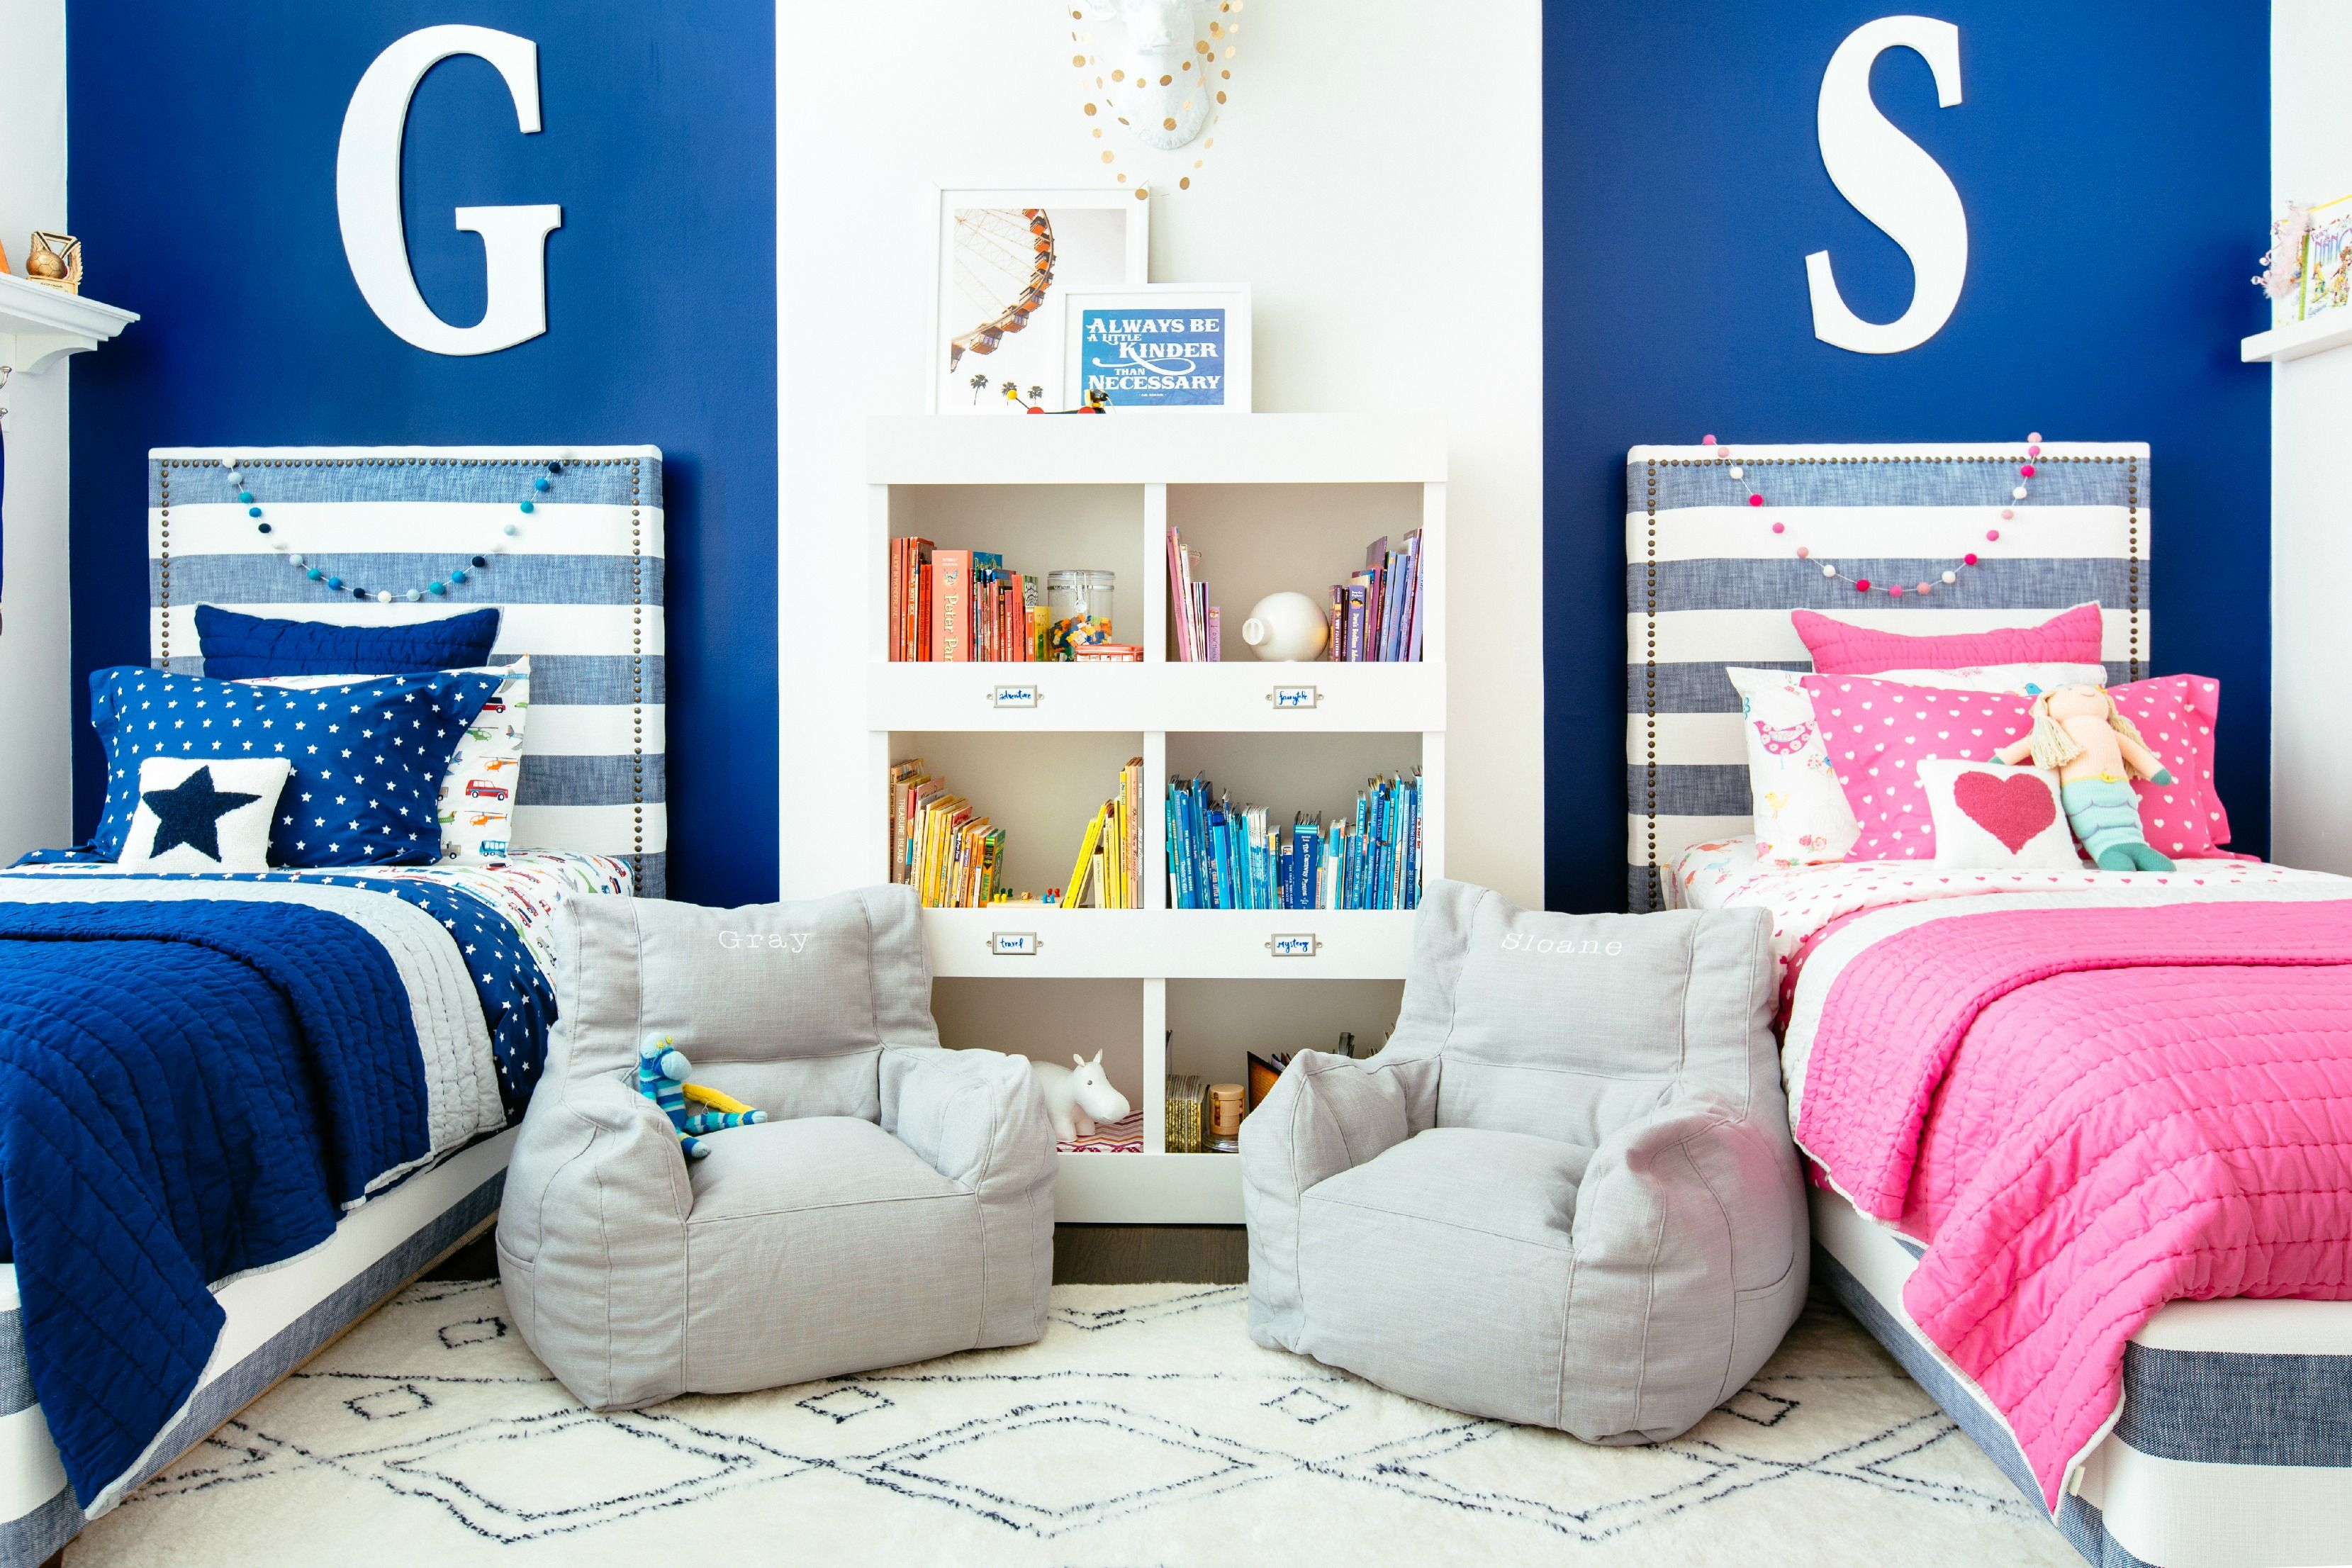 Boys sharing bedroom ideas - Find This Pin And More On Shared Boy Girl Bedroom By Anchorsandwhales